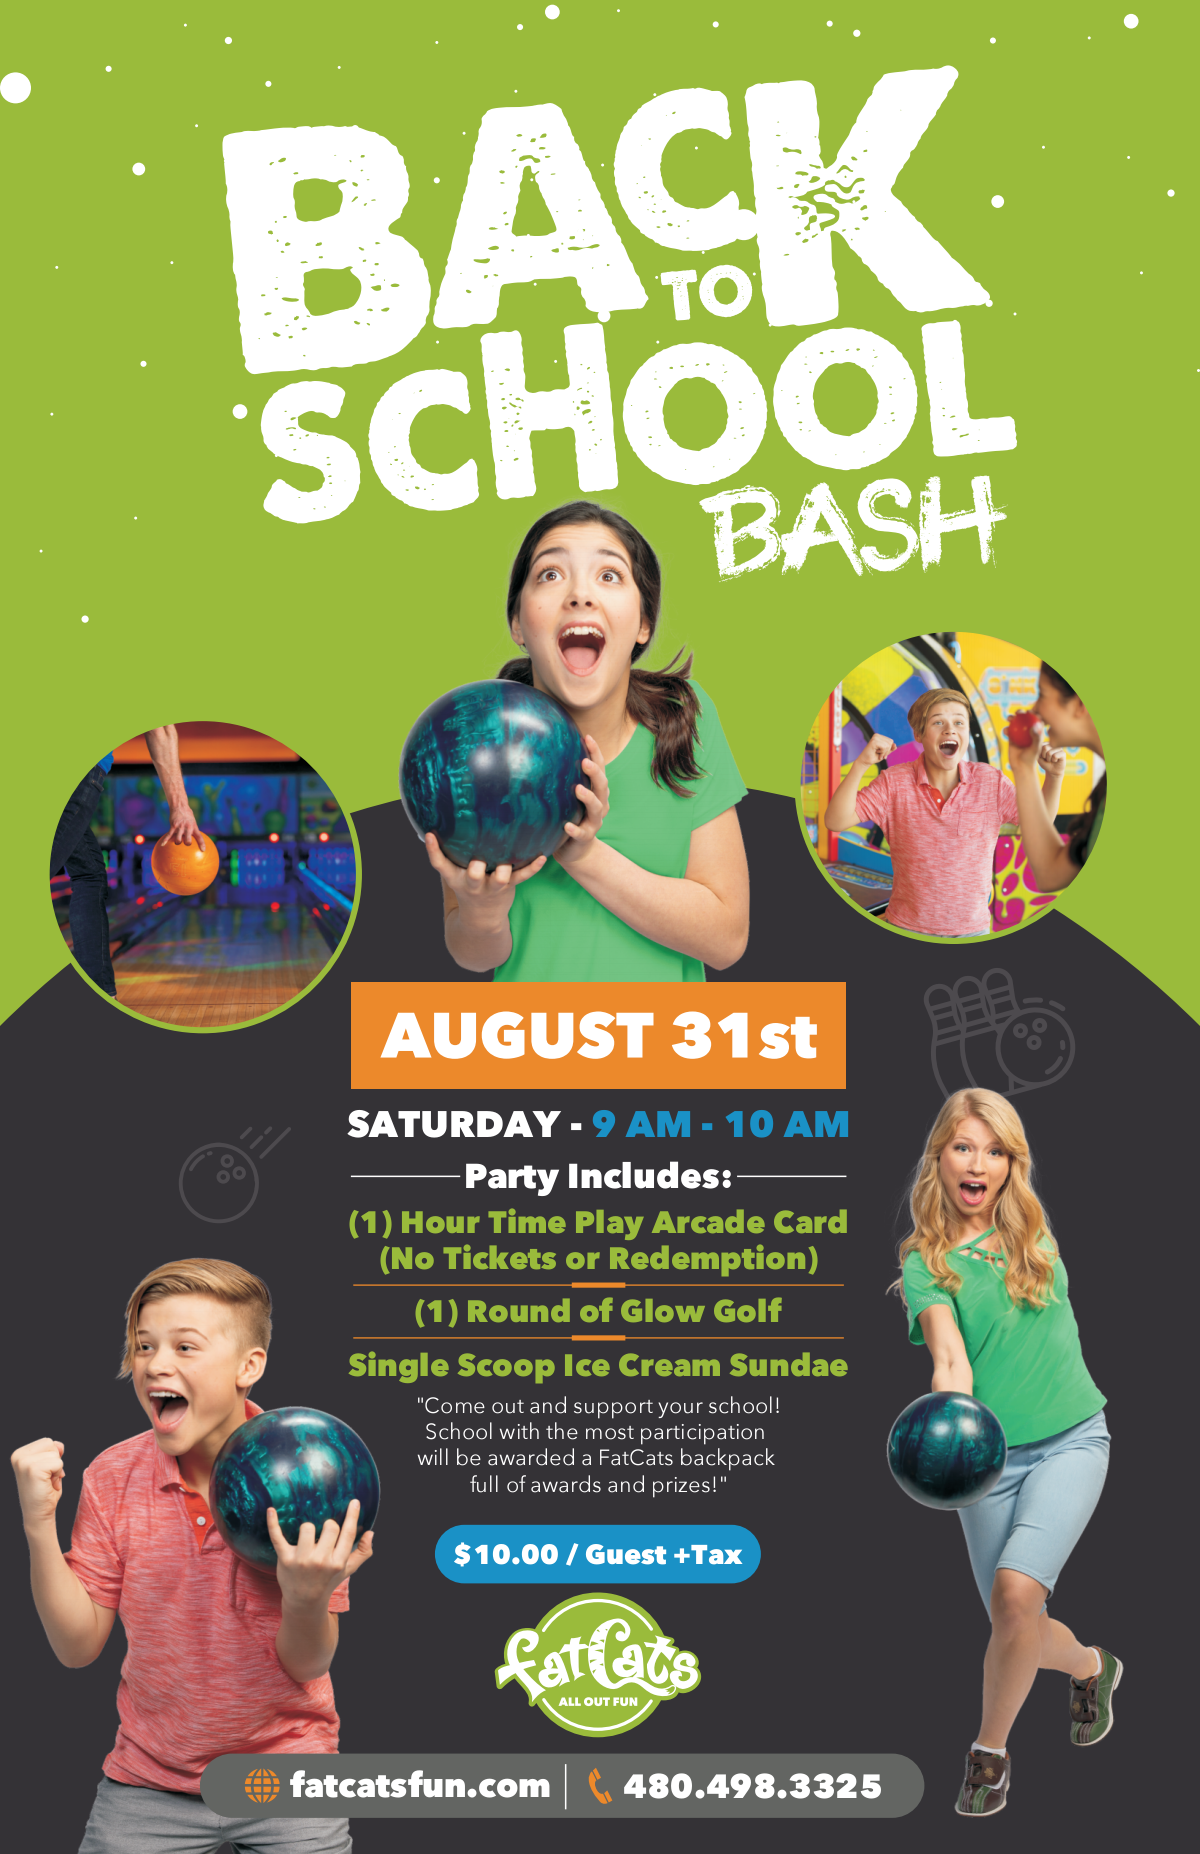 Back to School Event Flyer and Digital